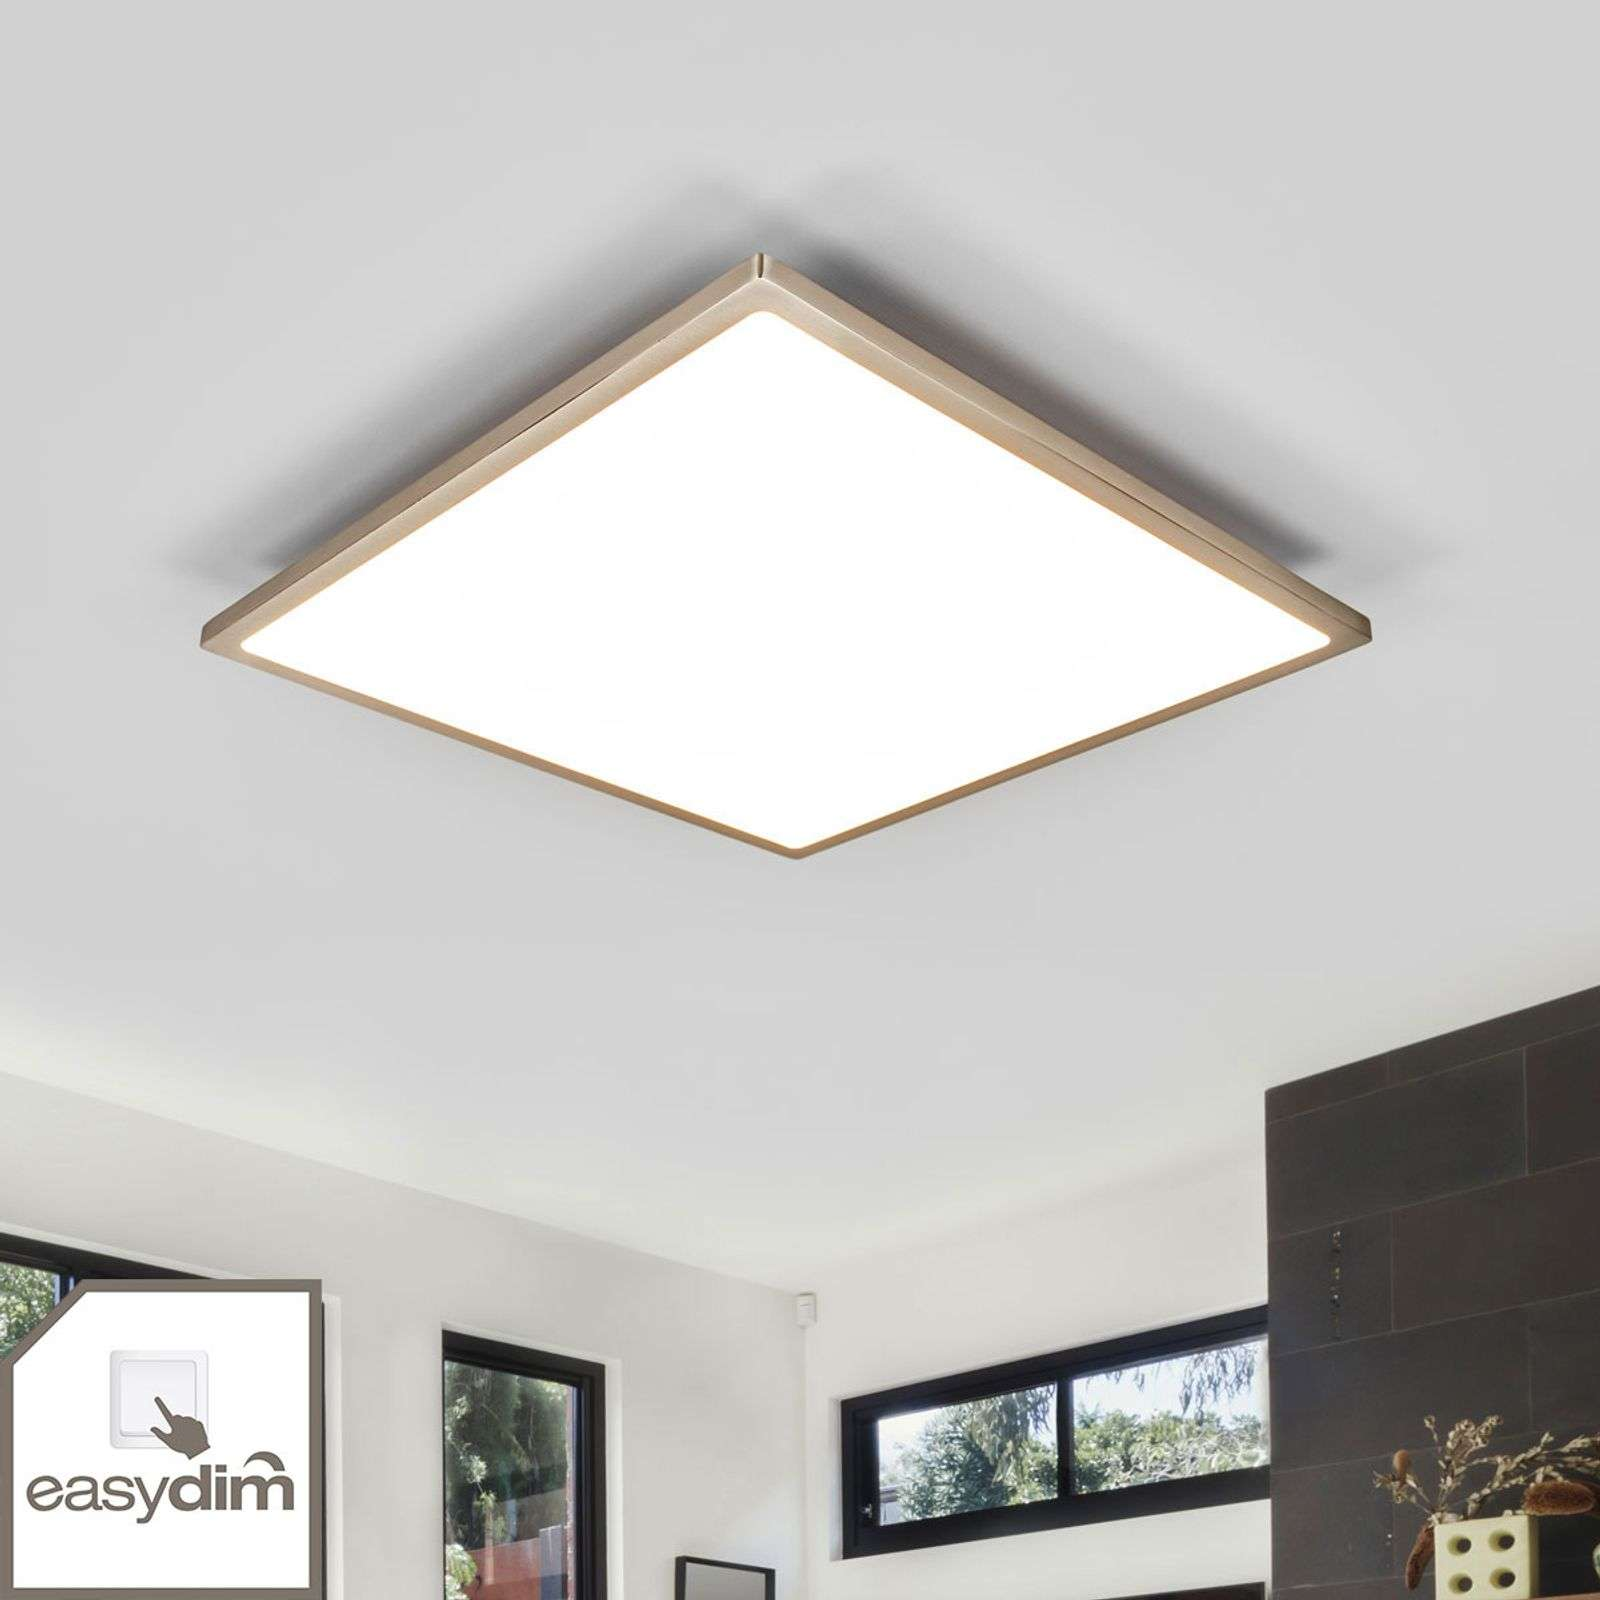 Pannello LED Moira color nichel Easydim